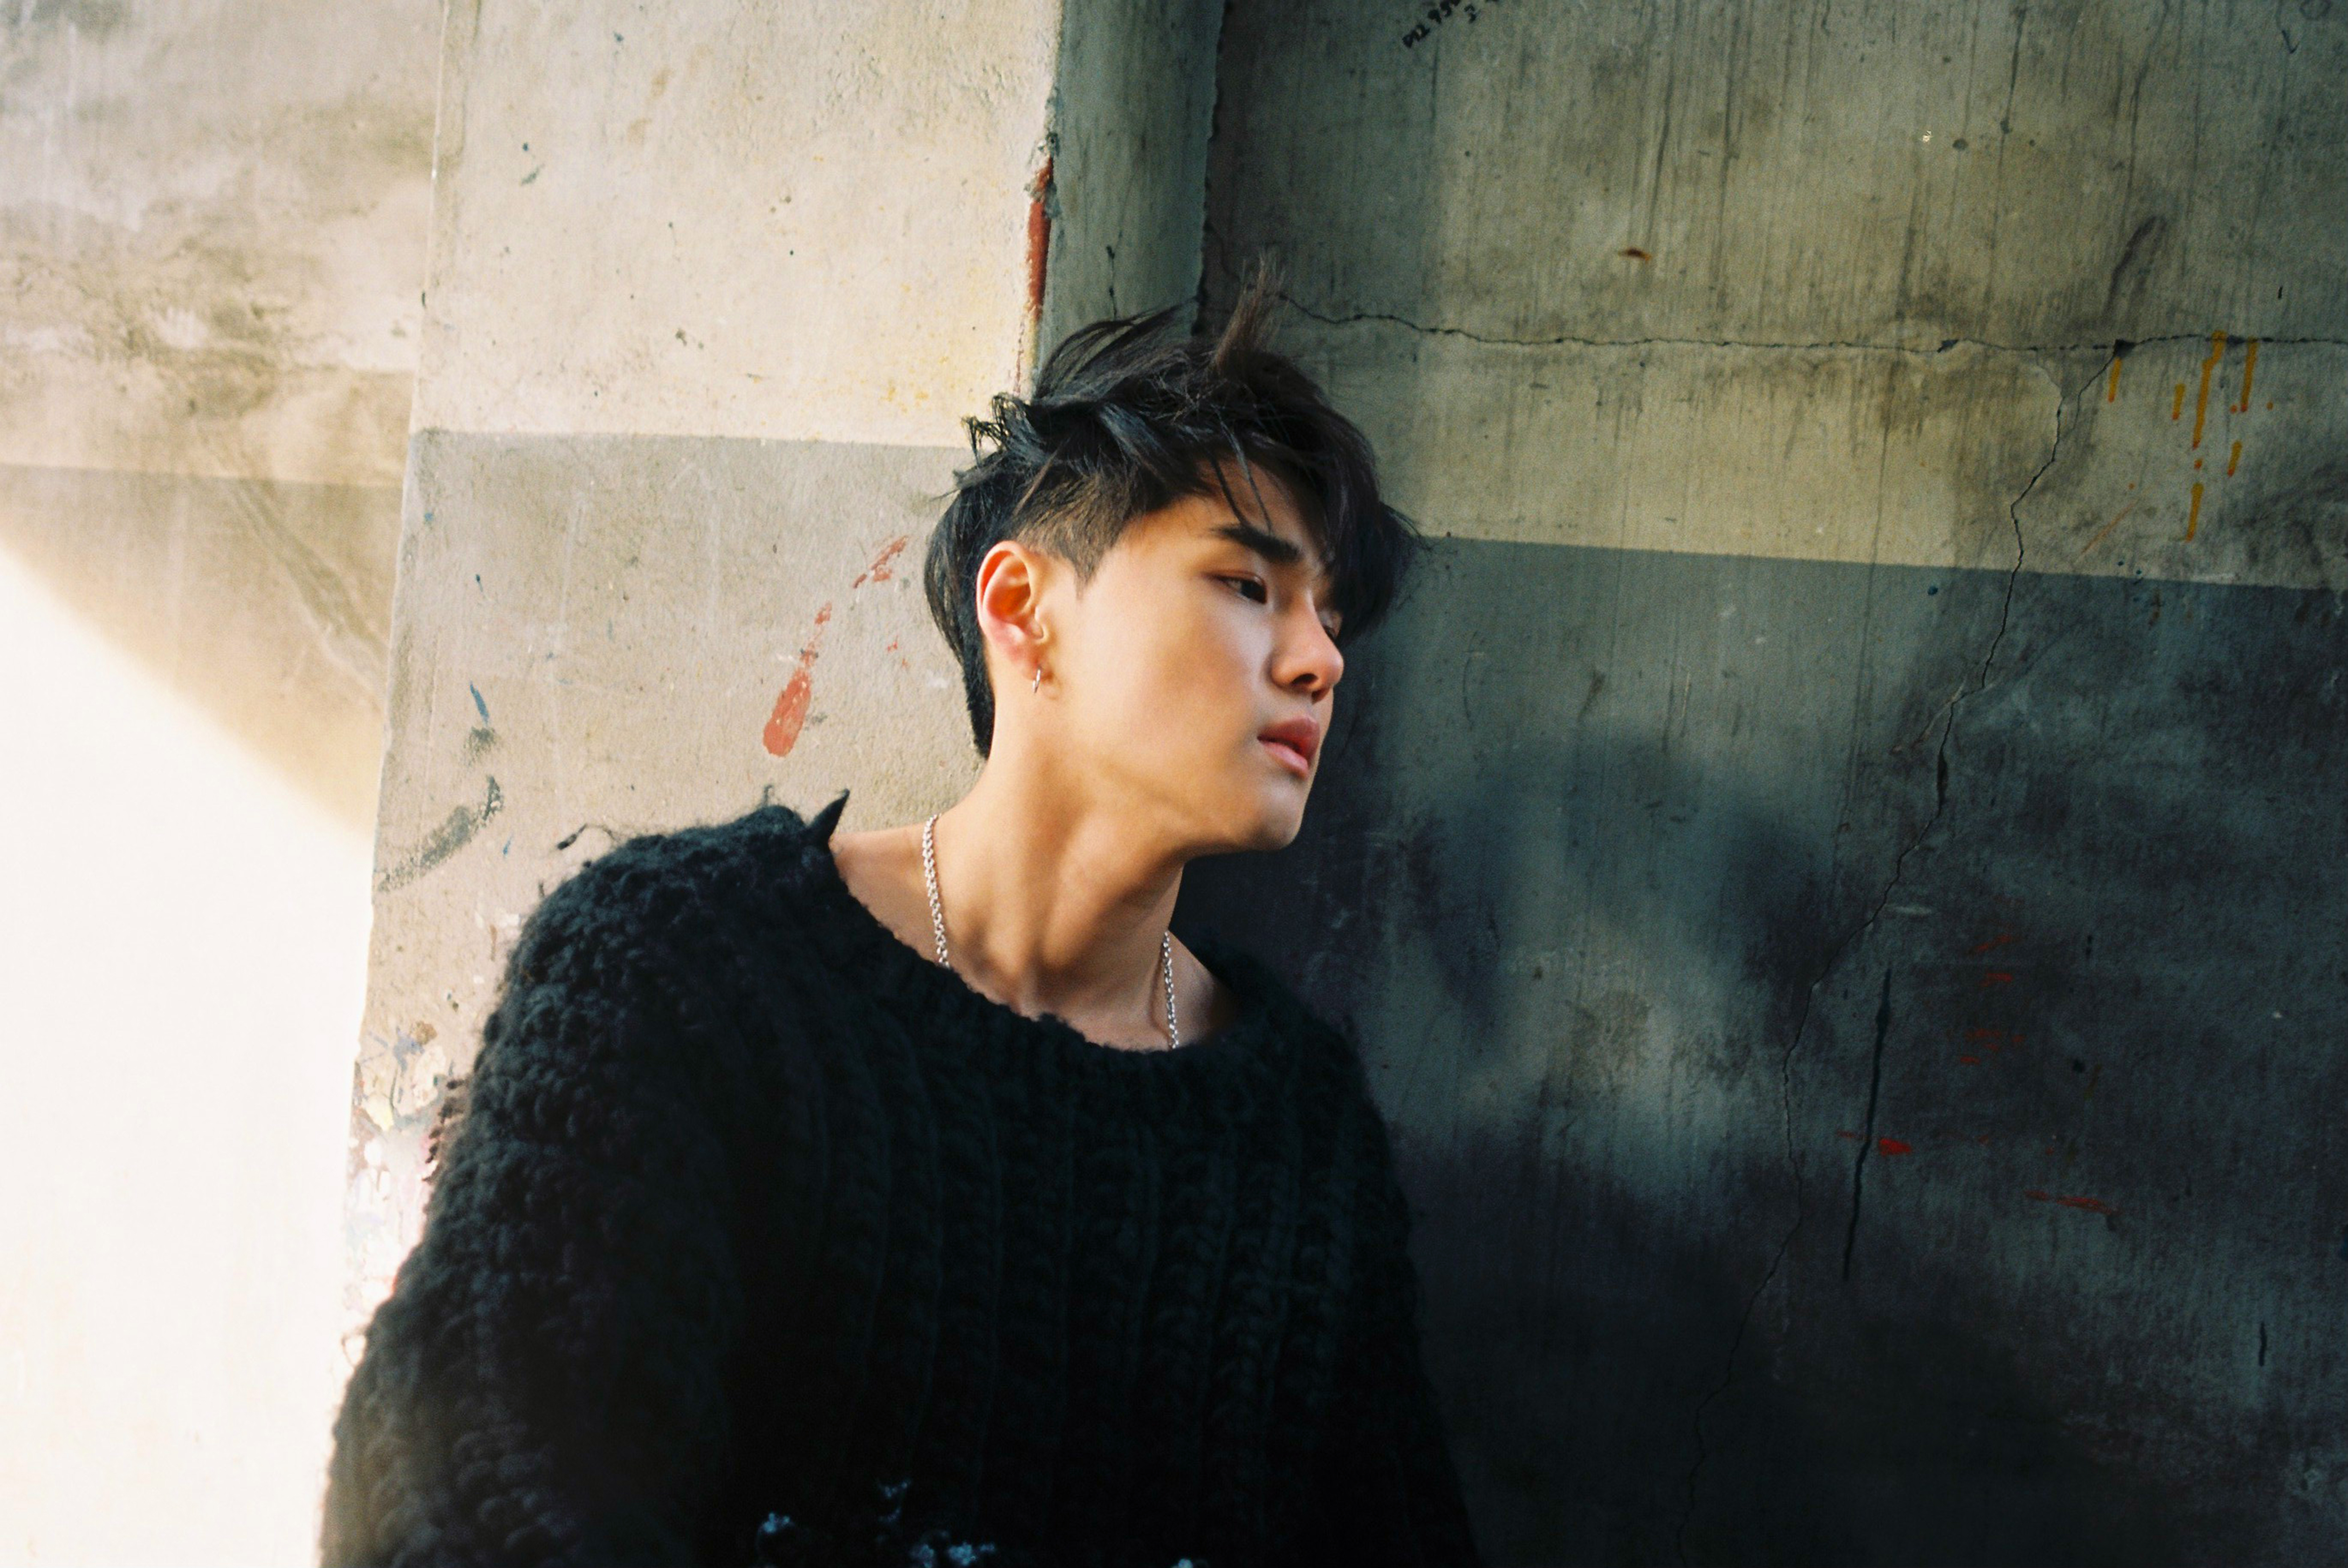 Korean R&B sensation Dean to perform at Spotify House during SXSW 2016